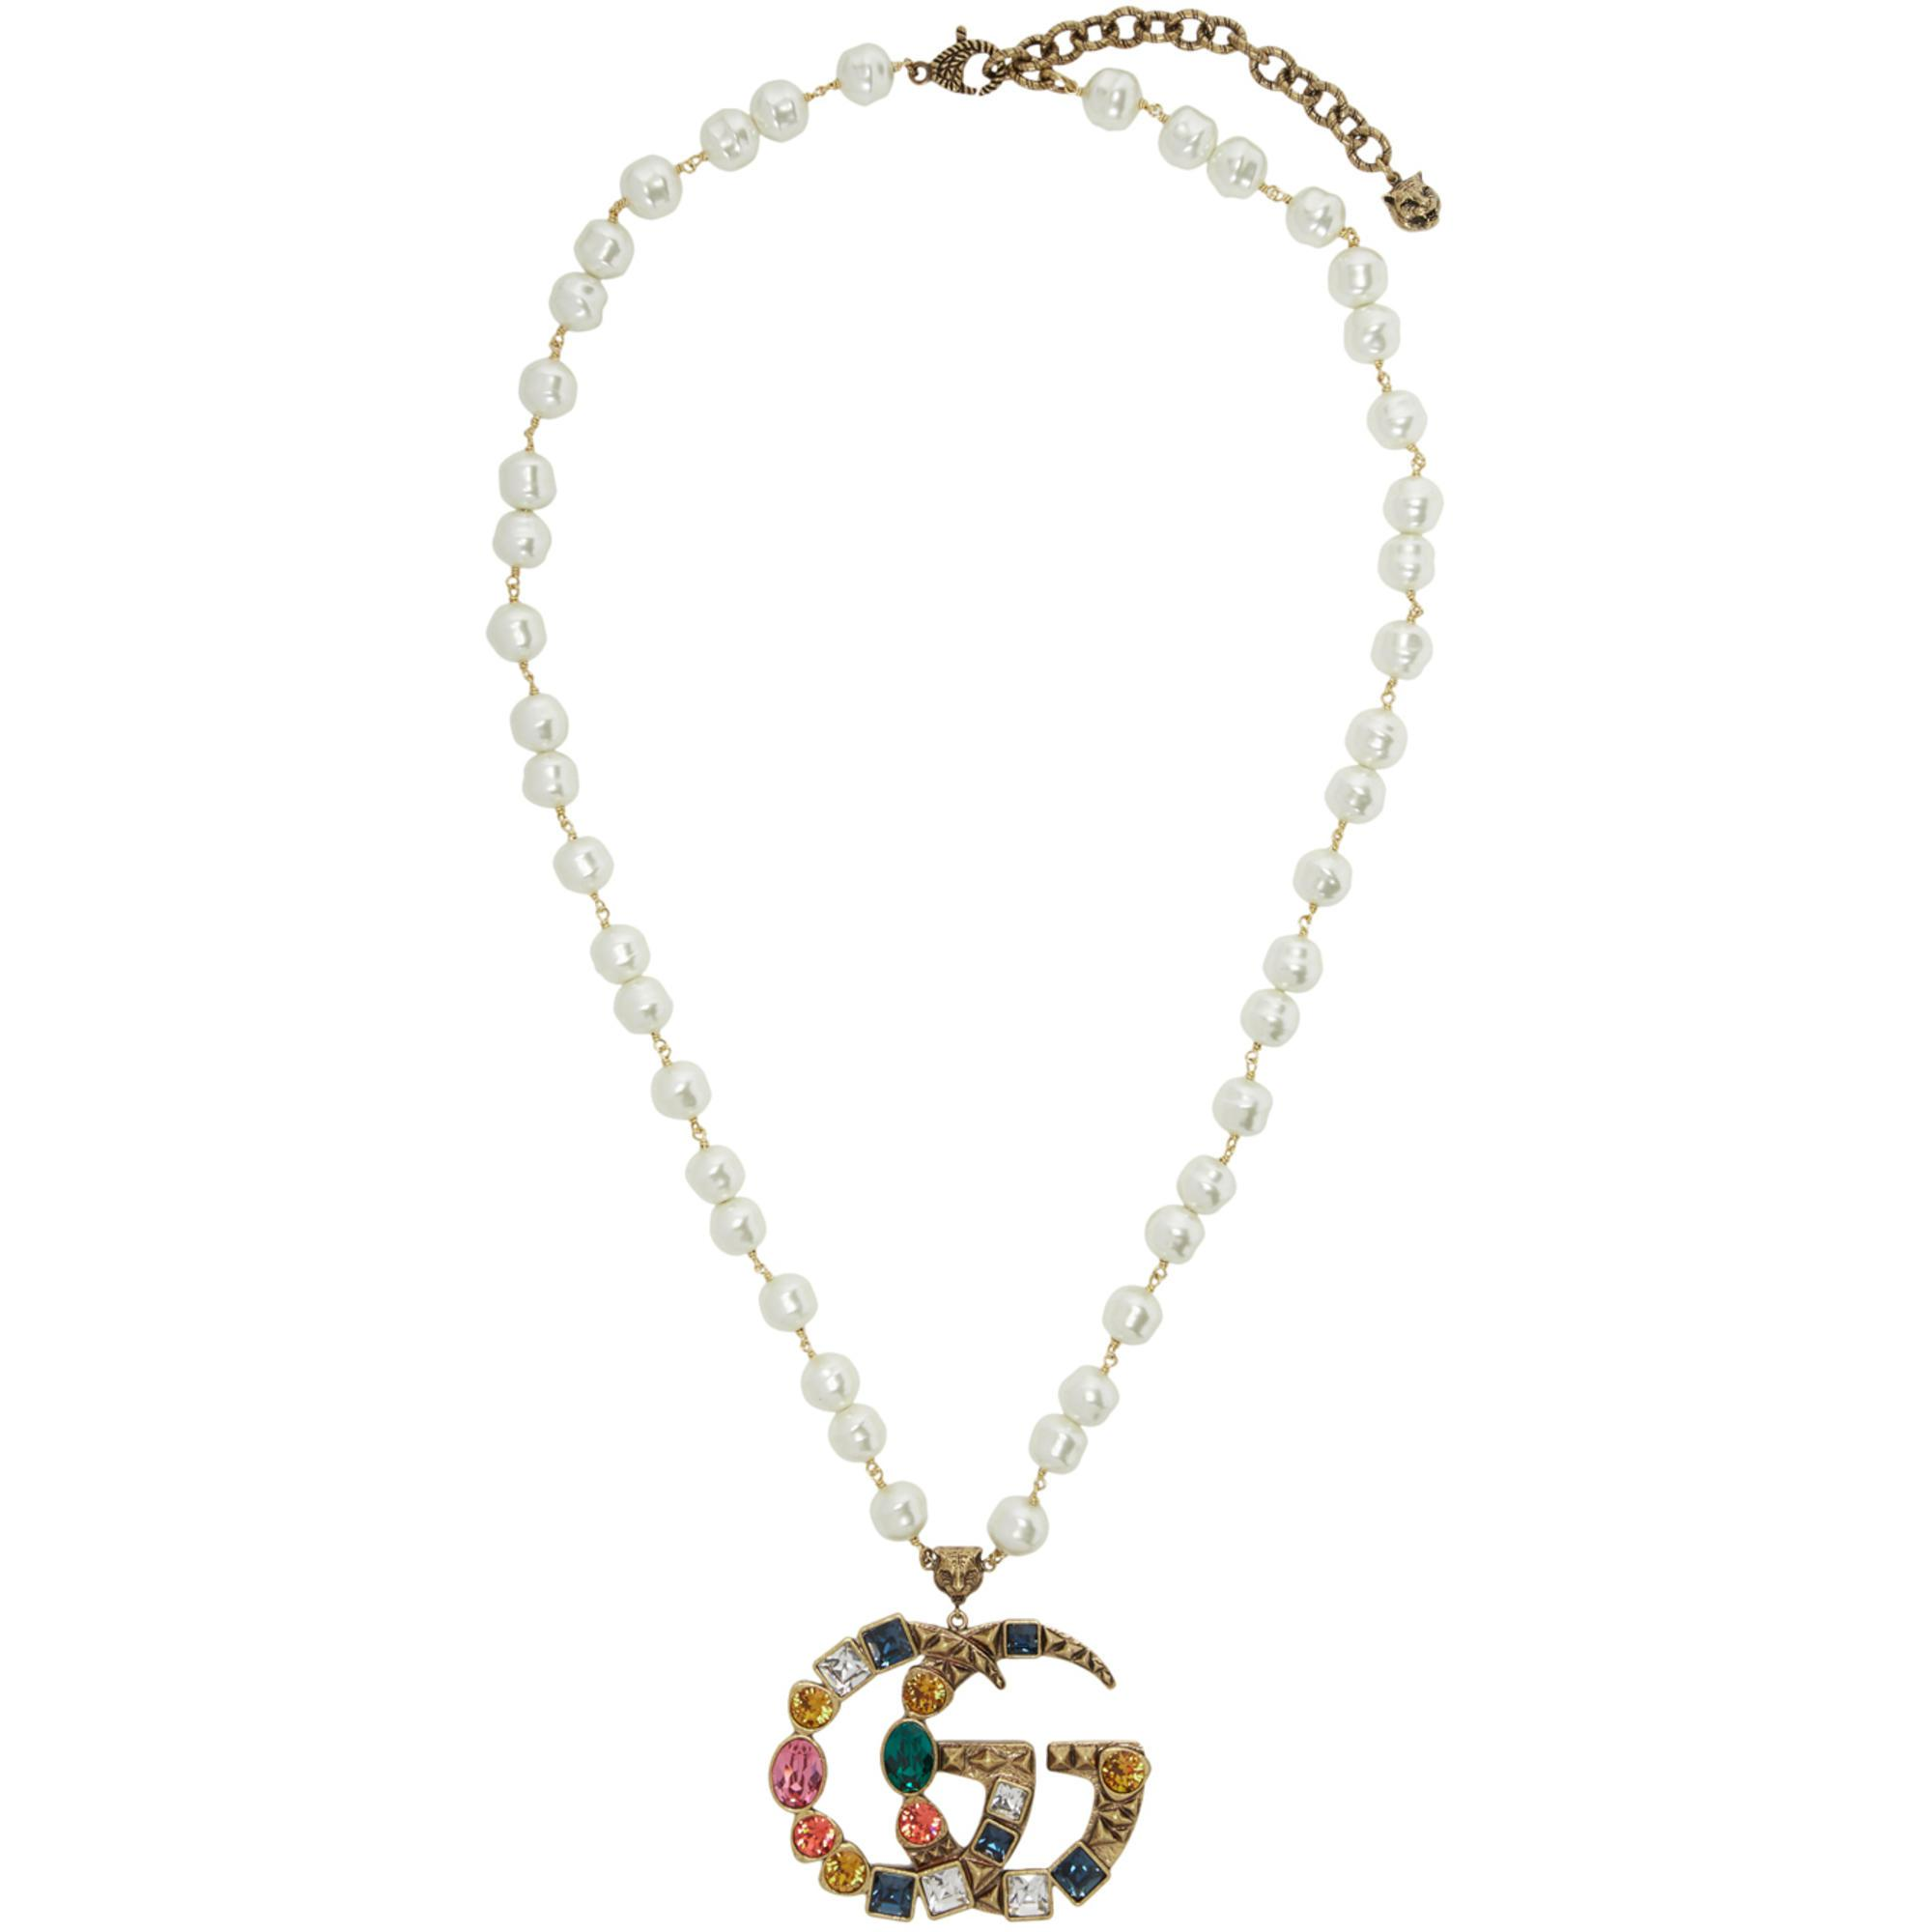 Gucci Guccy crystal pendant necklace - Metallic yVyTSc7